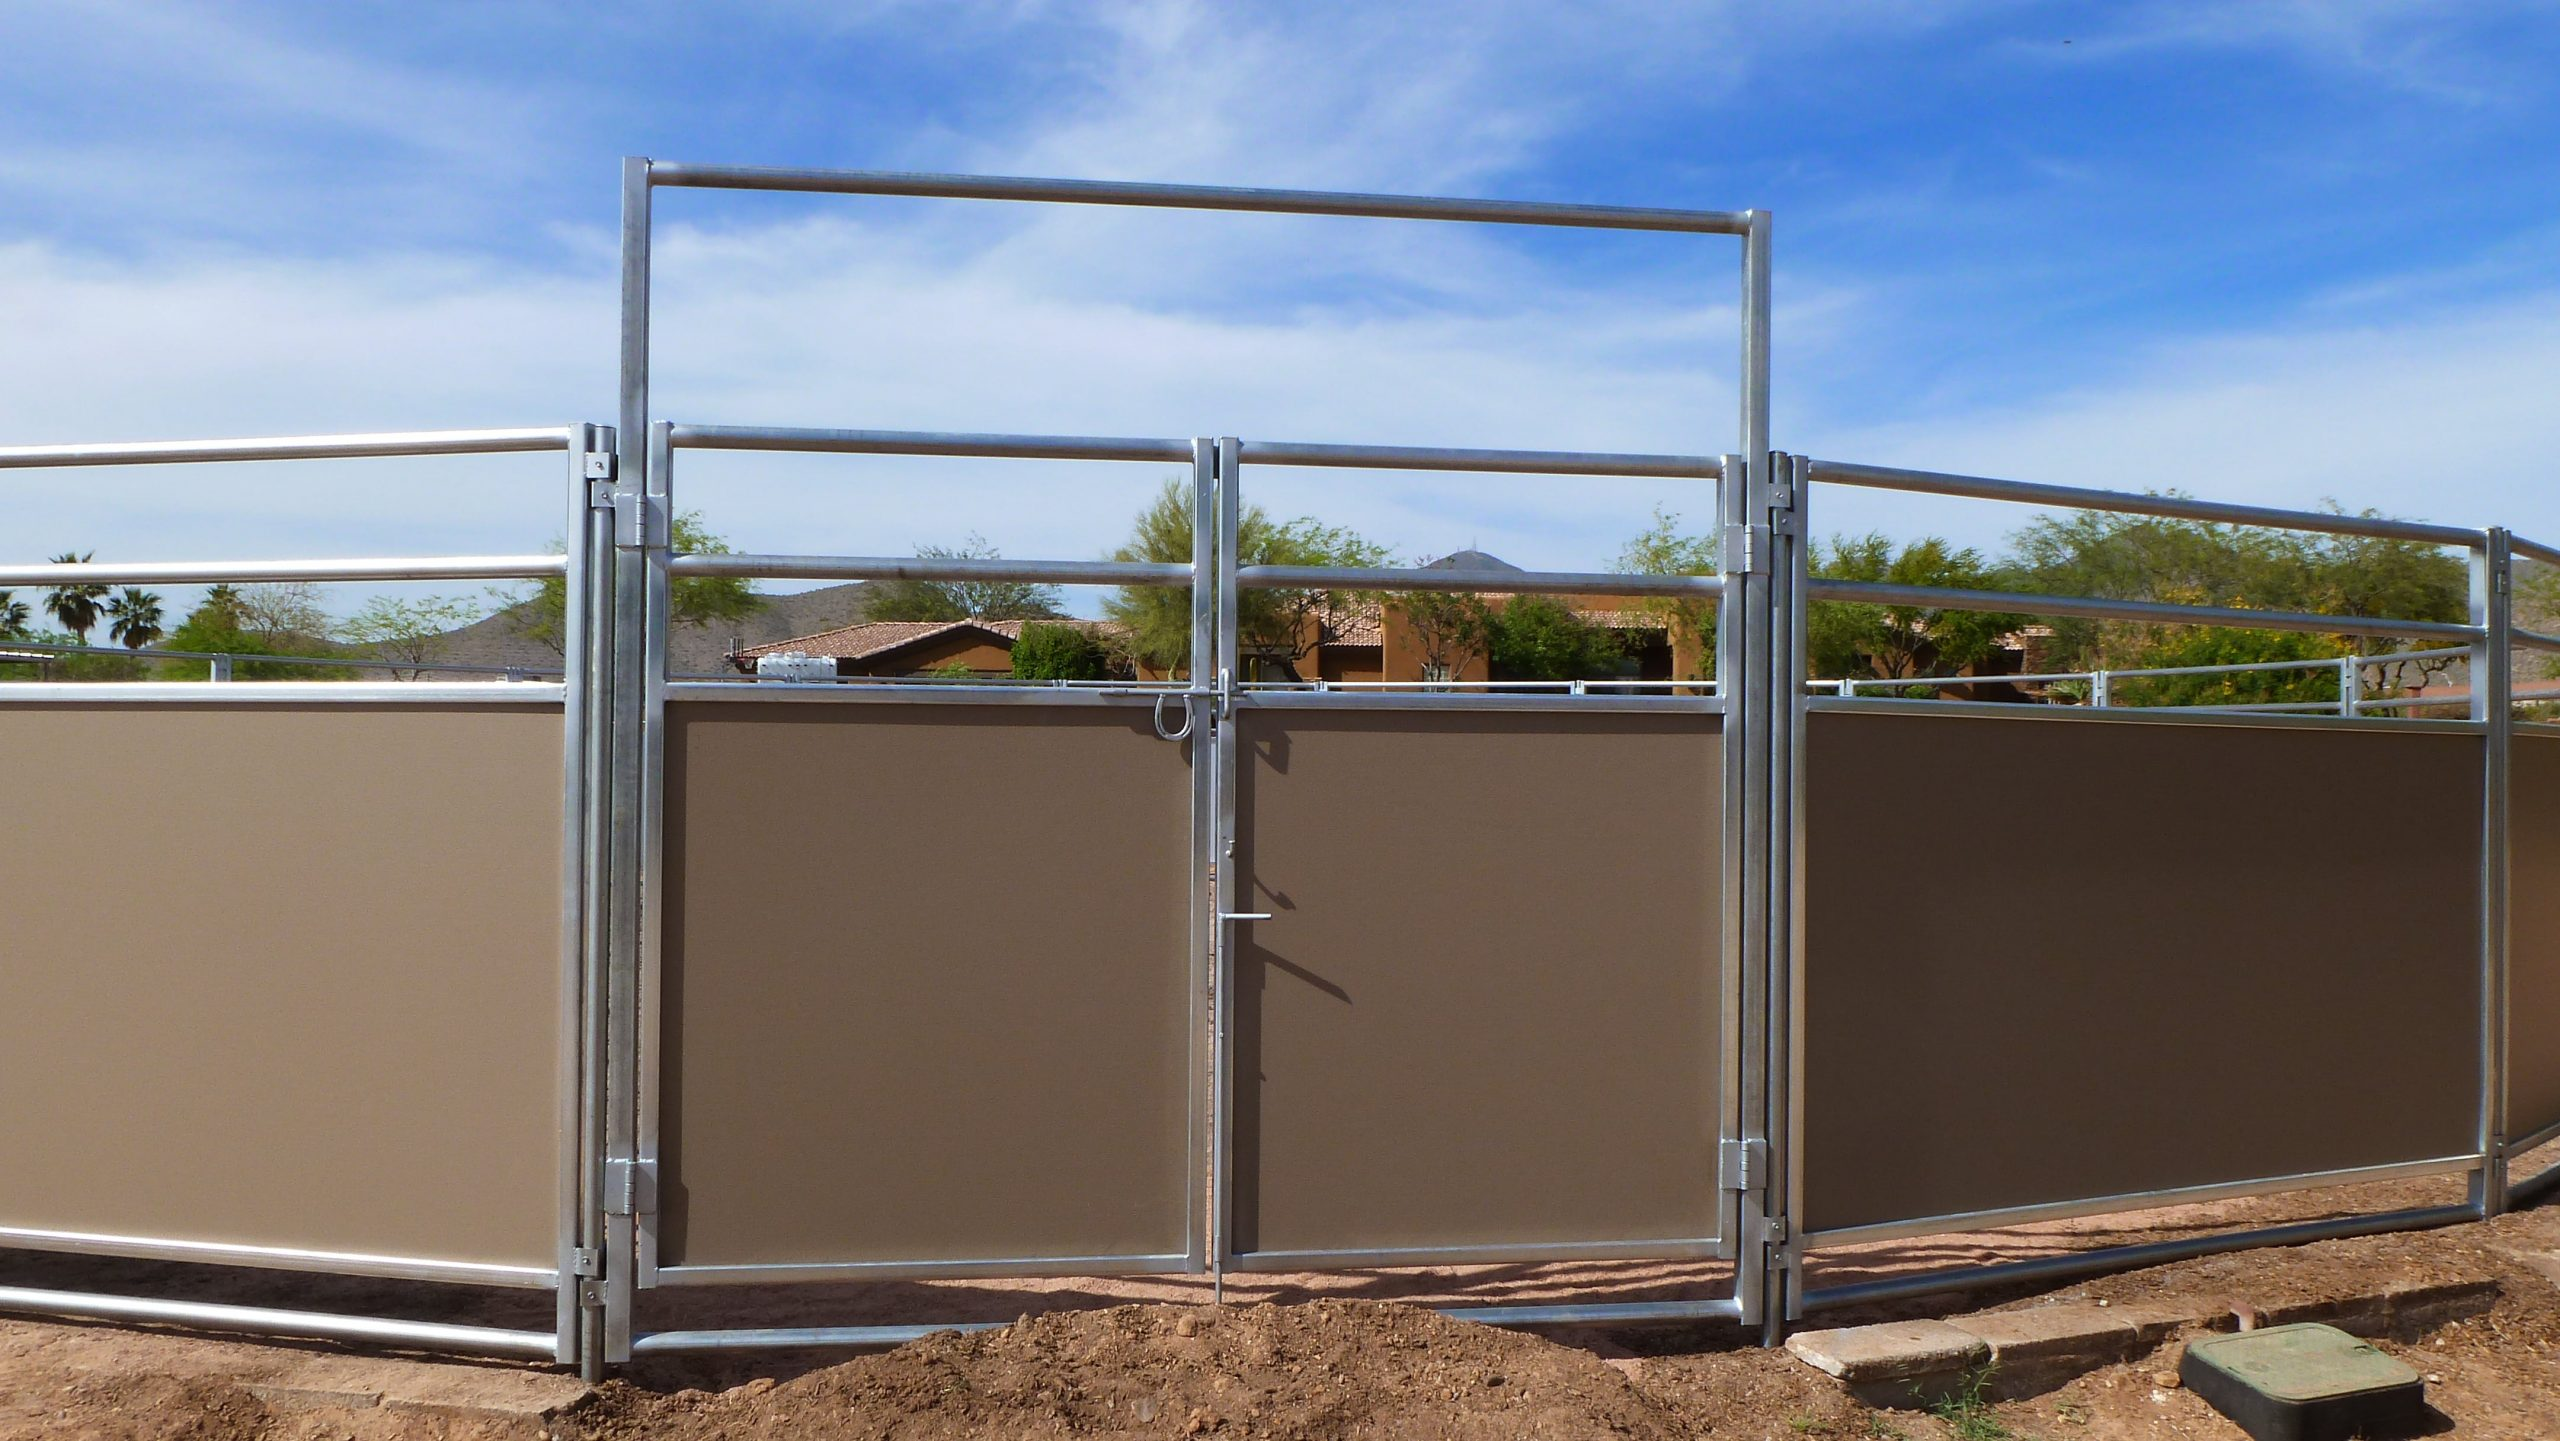 Gate for round pen. 8' wide double gate to round pens.